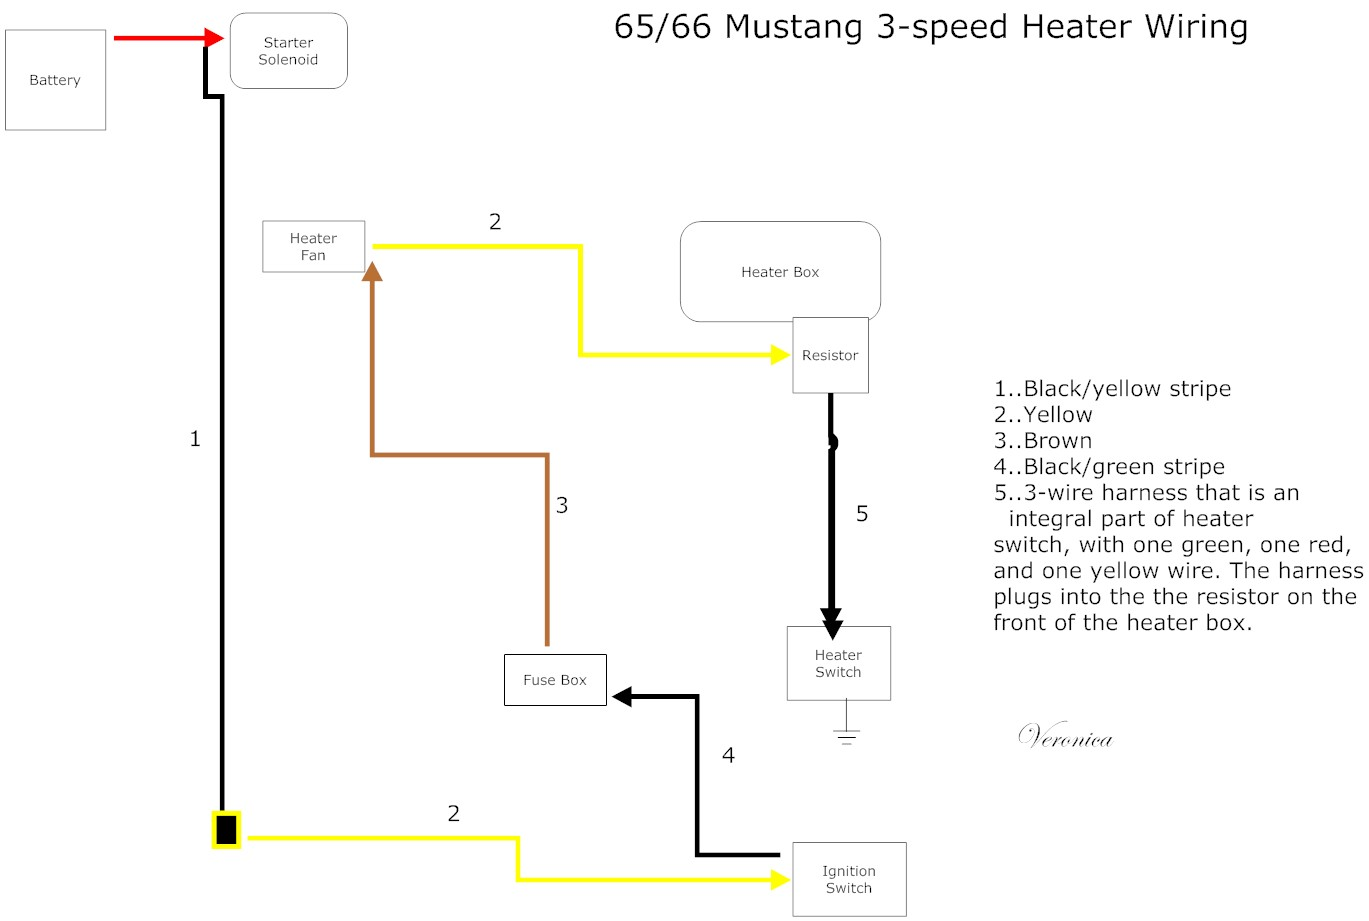 3+speed+heater the care and feeding of ponies mustang heater blower motor 1965 1966 mustang heater wiring diagram at bayanpartner.co